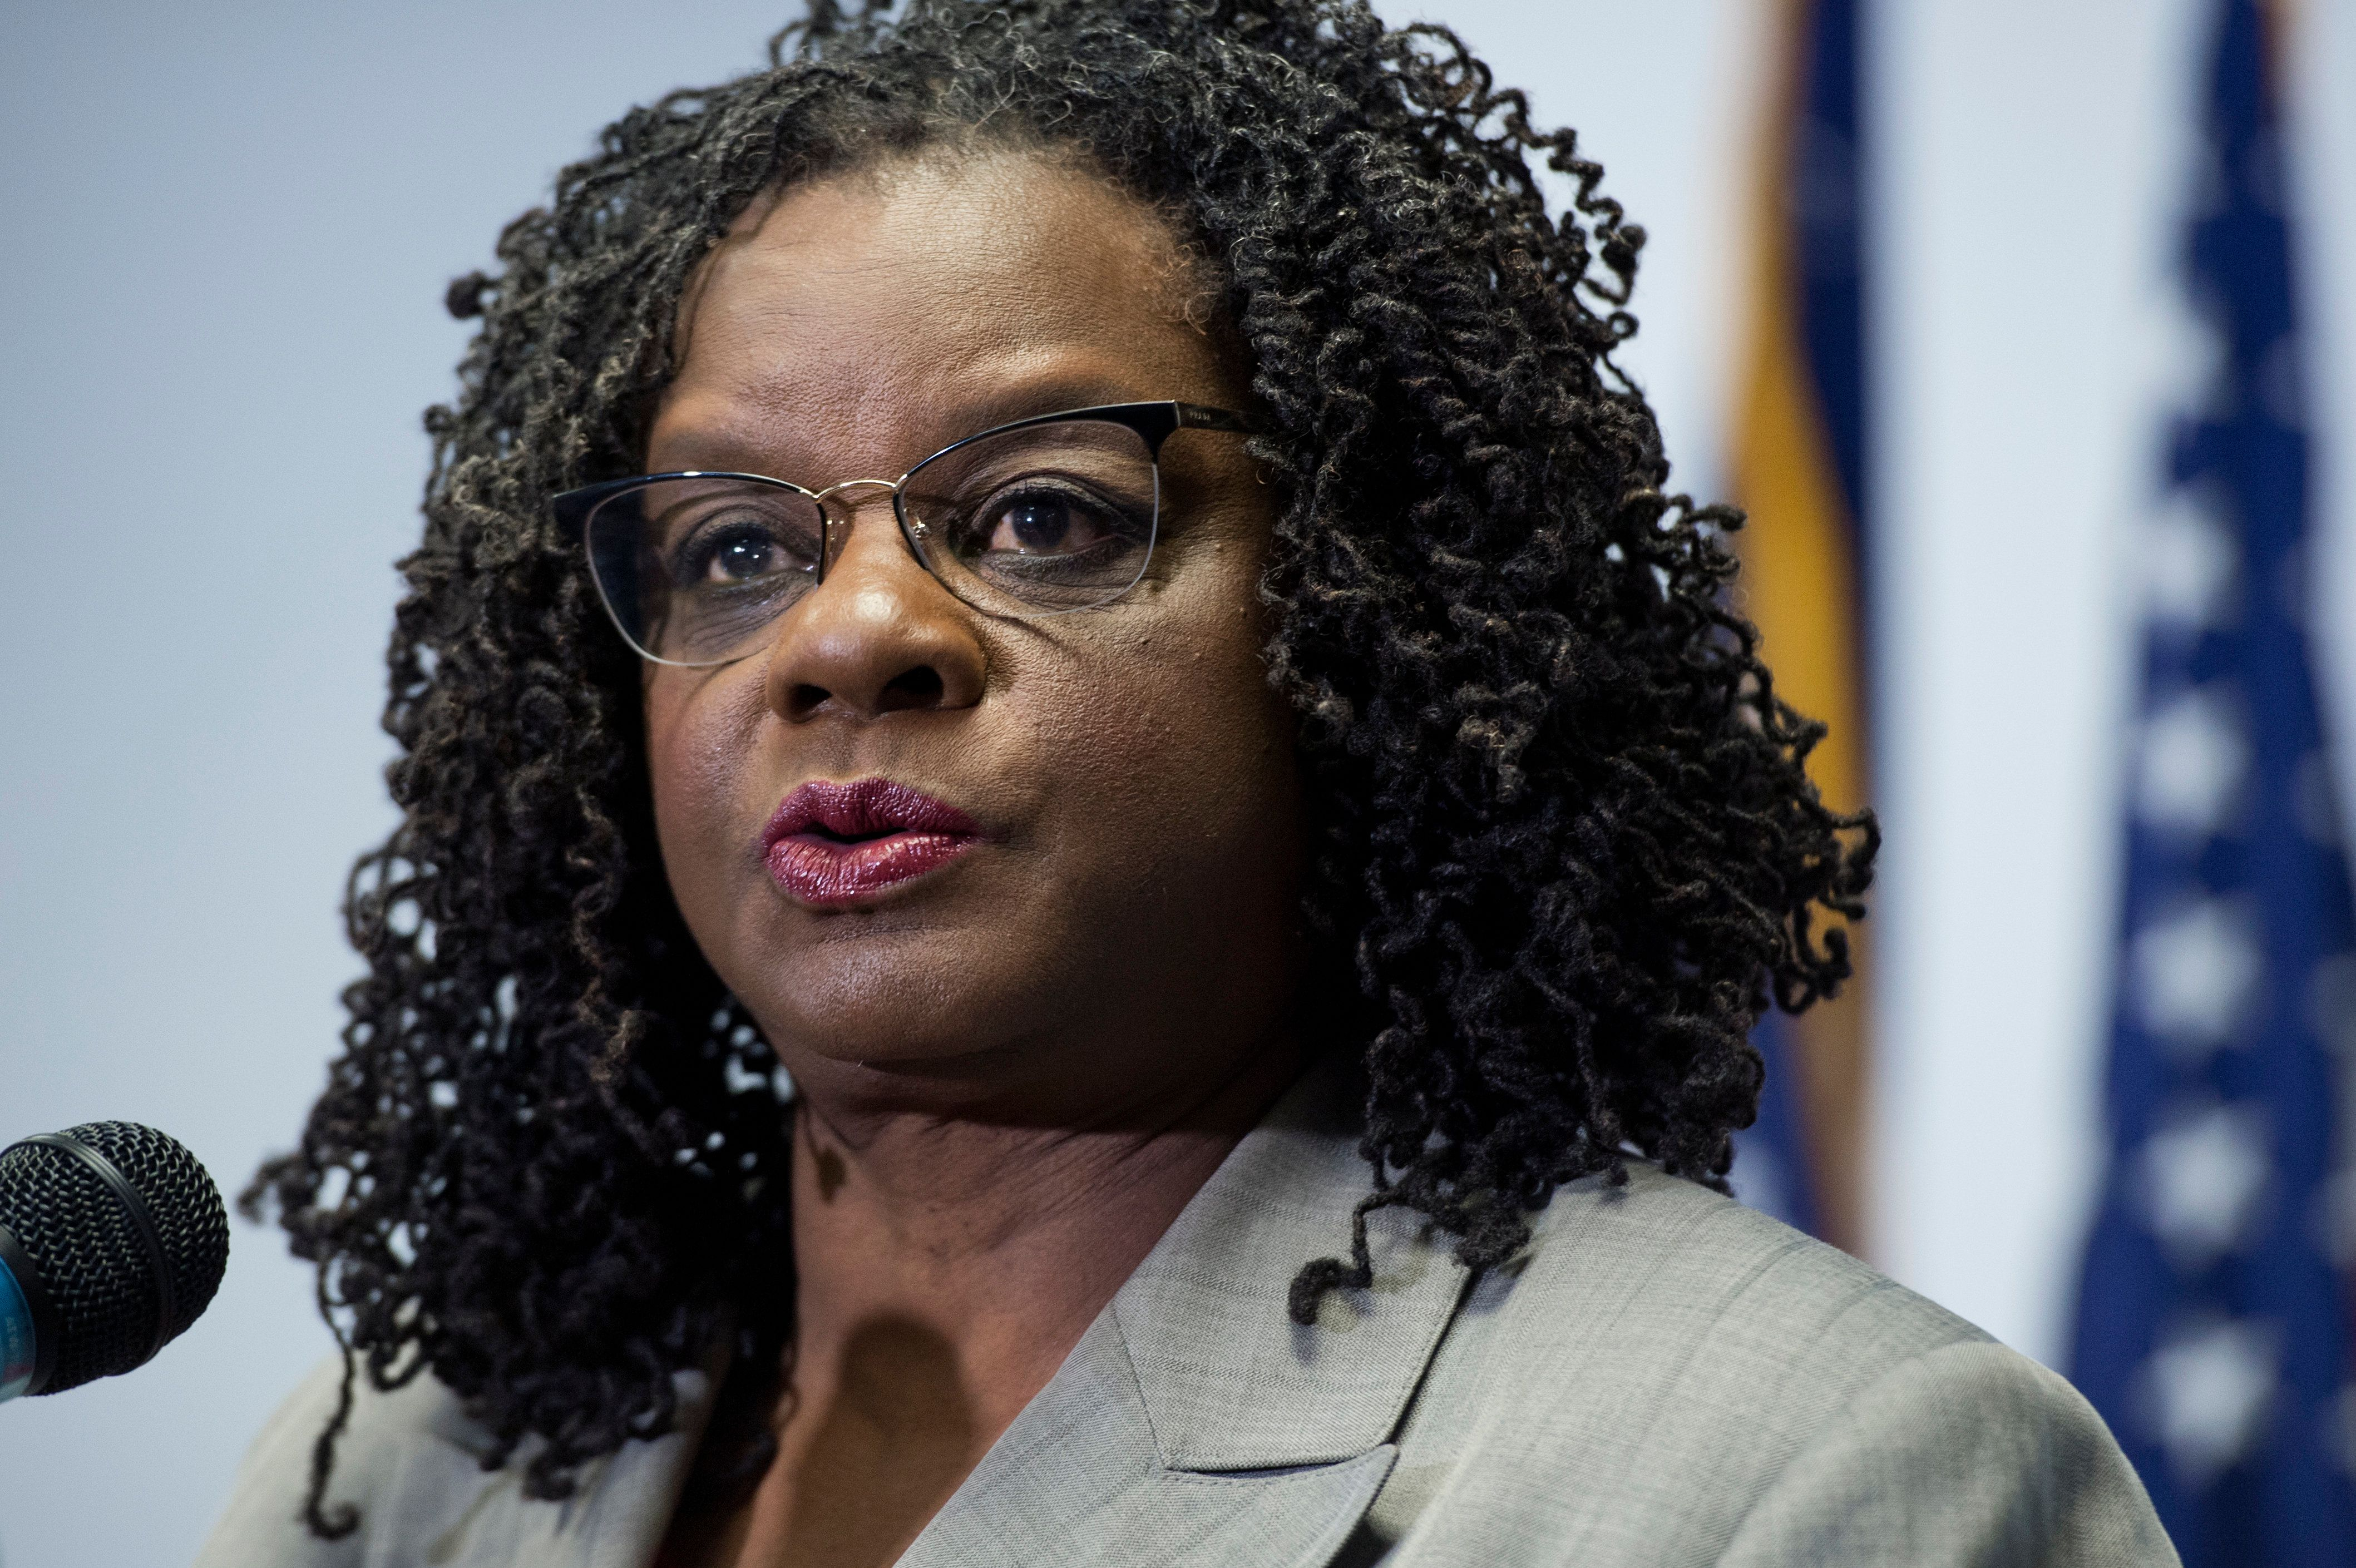 UNITED STATES - FEBRUARY 11: Rep. Gwen Moore, D-Wisc., conducts a news conference at the DNC where members of the Congressional Black Caucus PAC endorsed Hillary Clinton for president, February 11, 2016. (Photo By Tom Williams/CQ Roll Call)